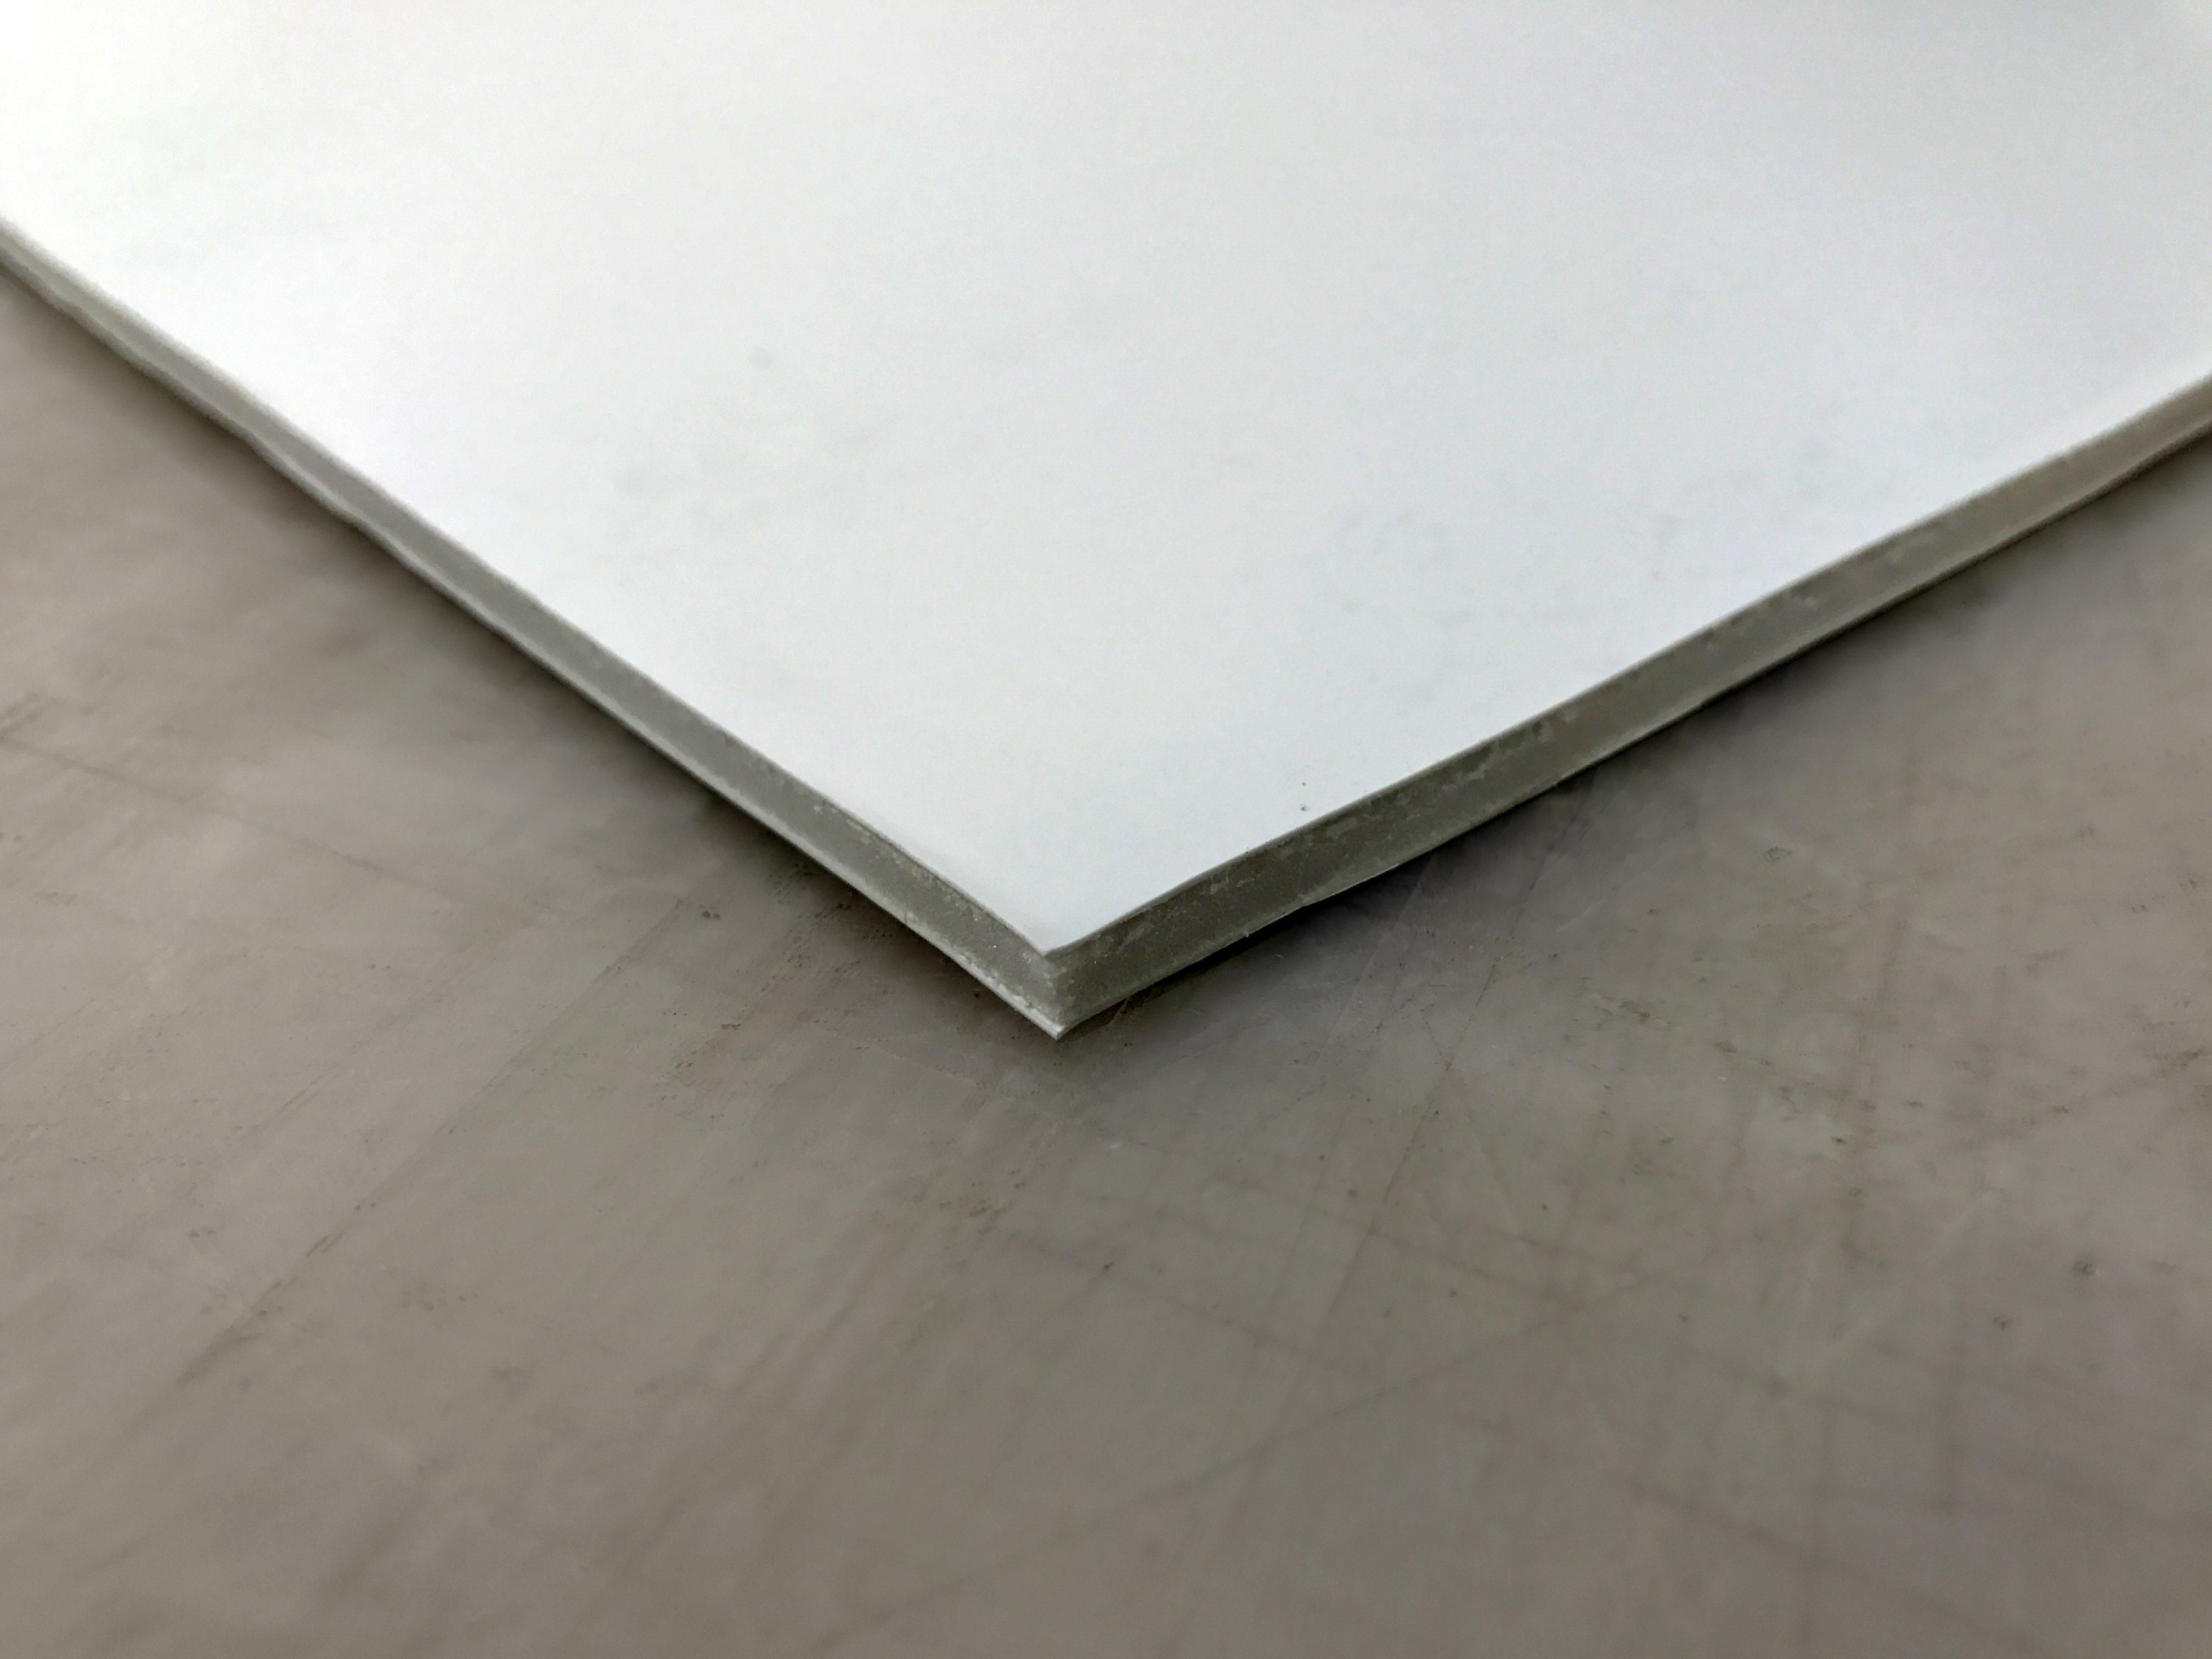 Cross-section image of Foam Core Ultra with plastic layer and foam inside